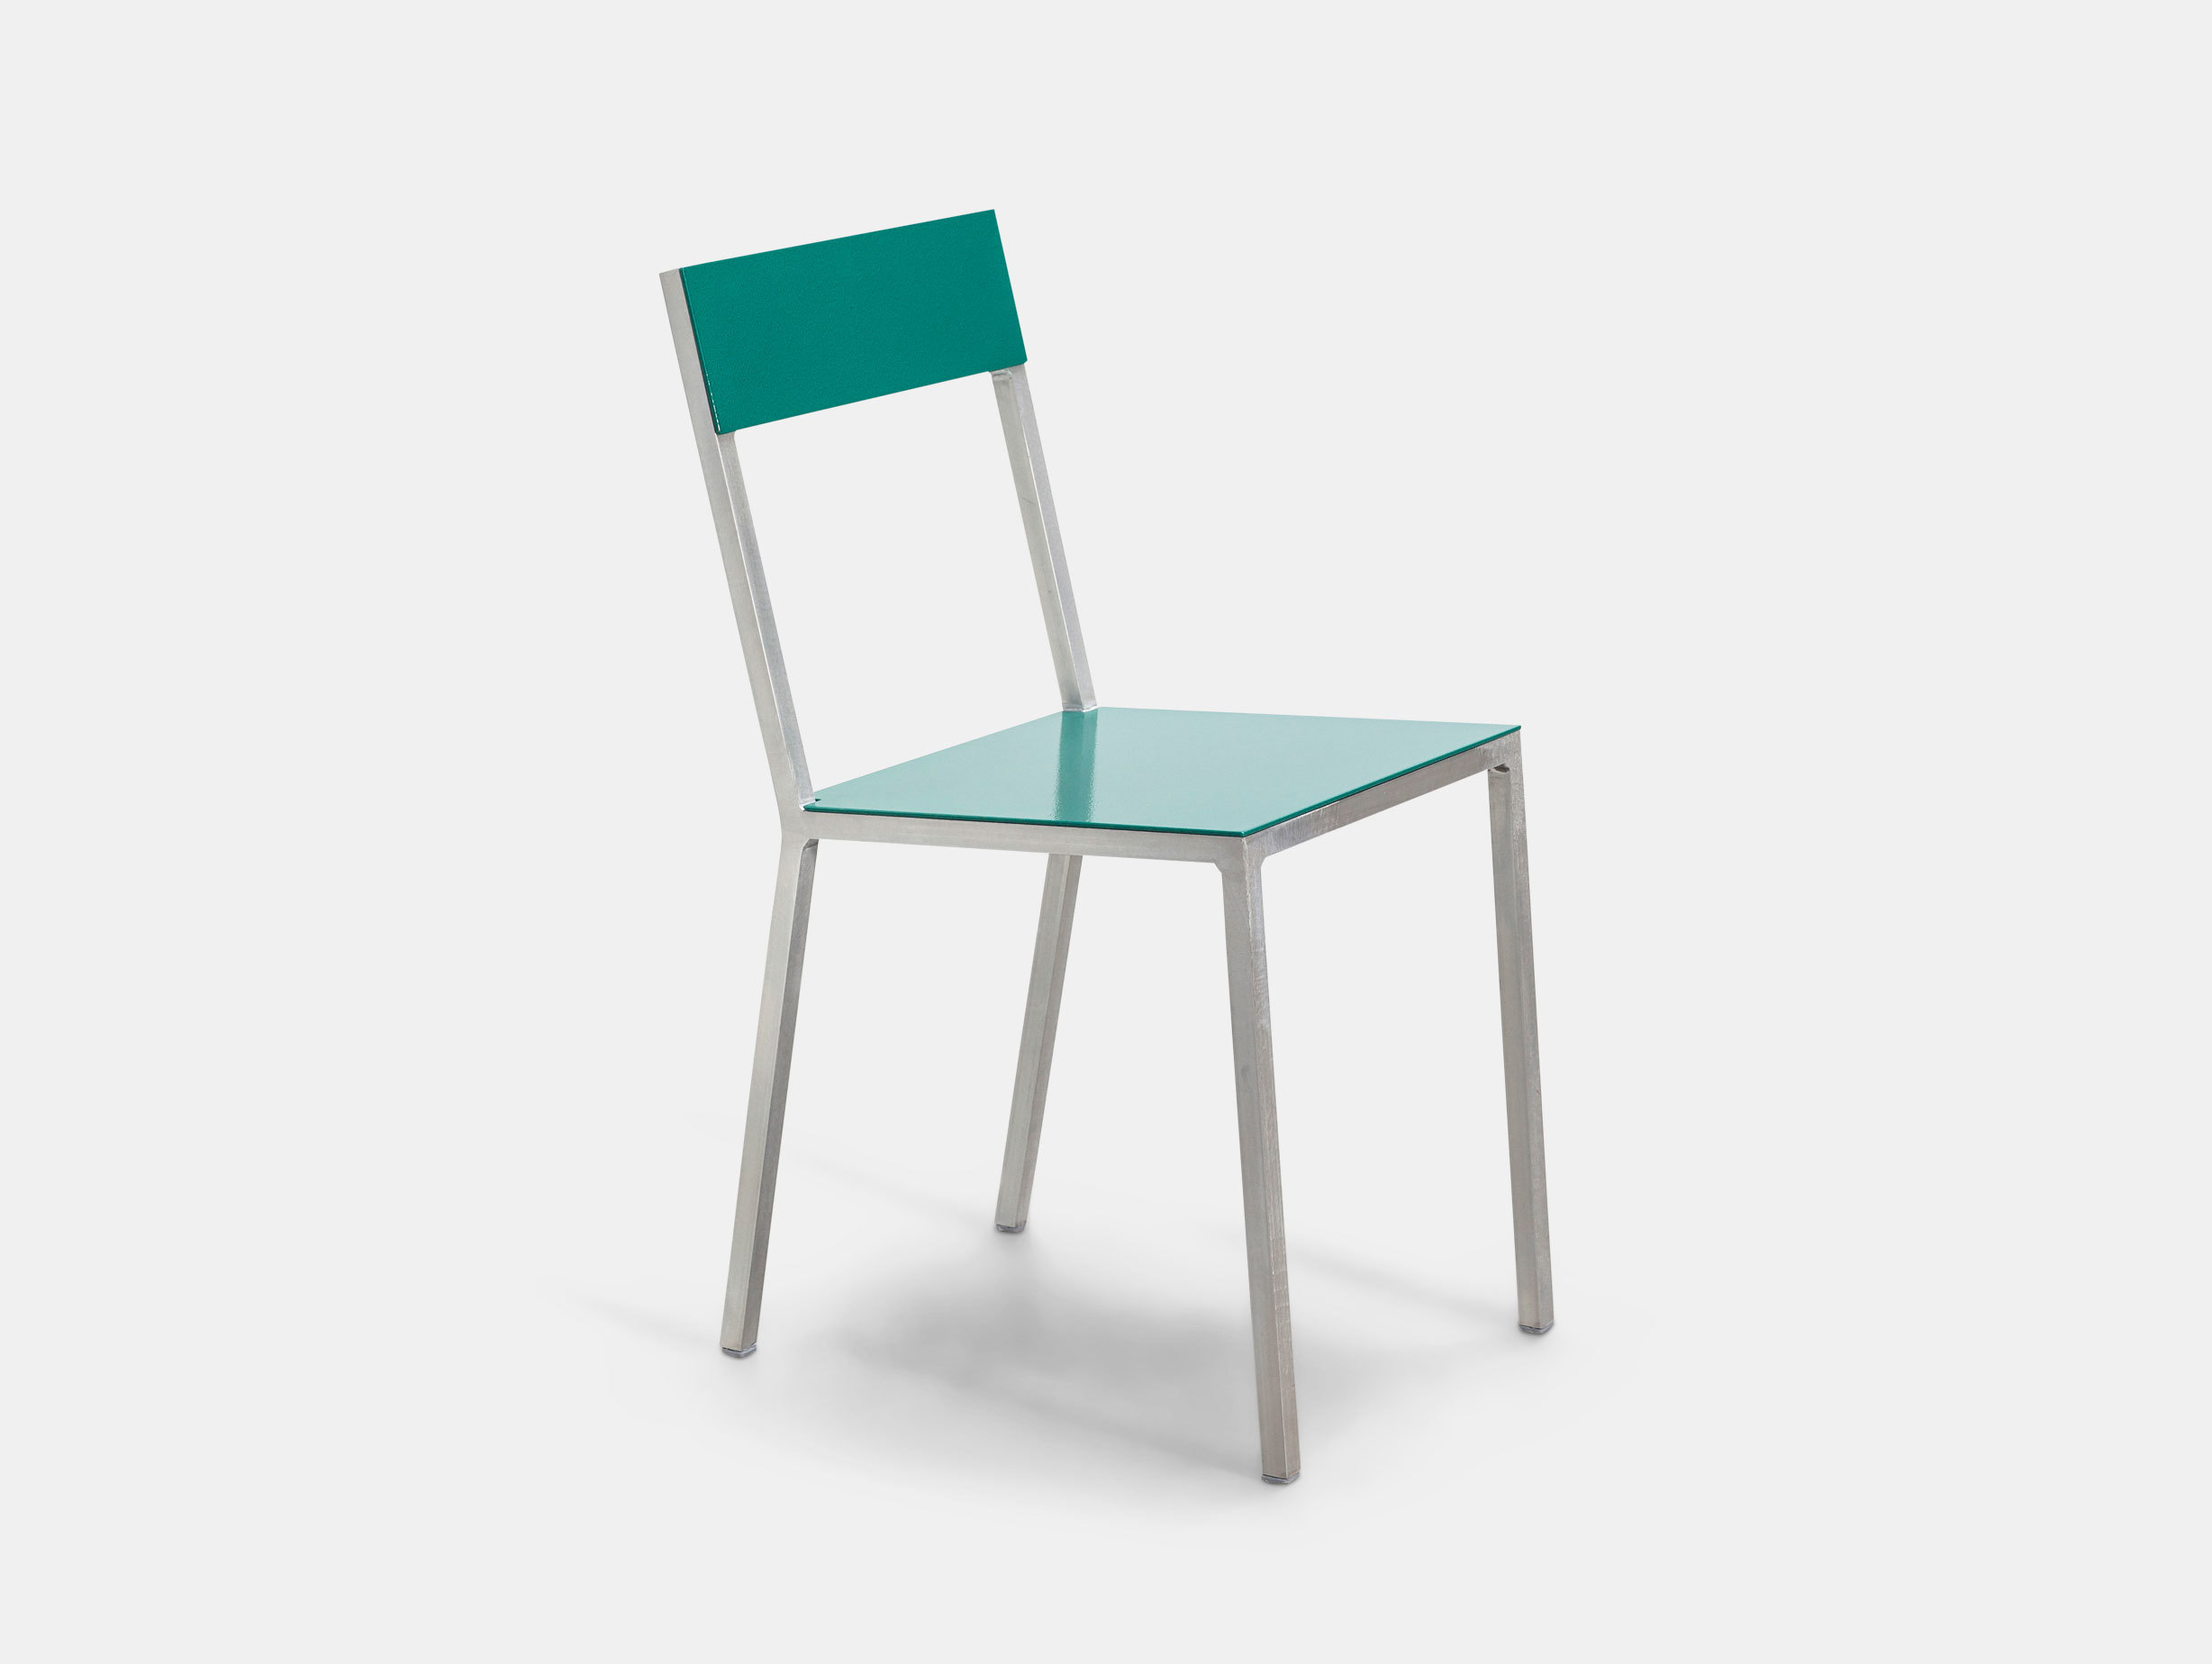 Valerie Objects Alu Chair Seathpgreen Backhpgreen Muller Van Severen